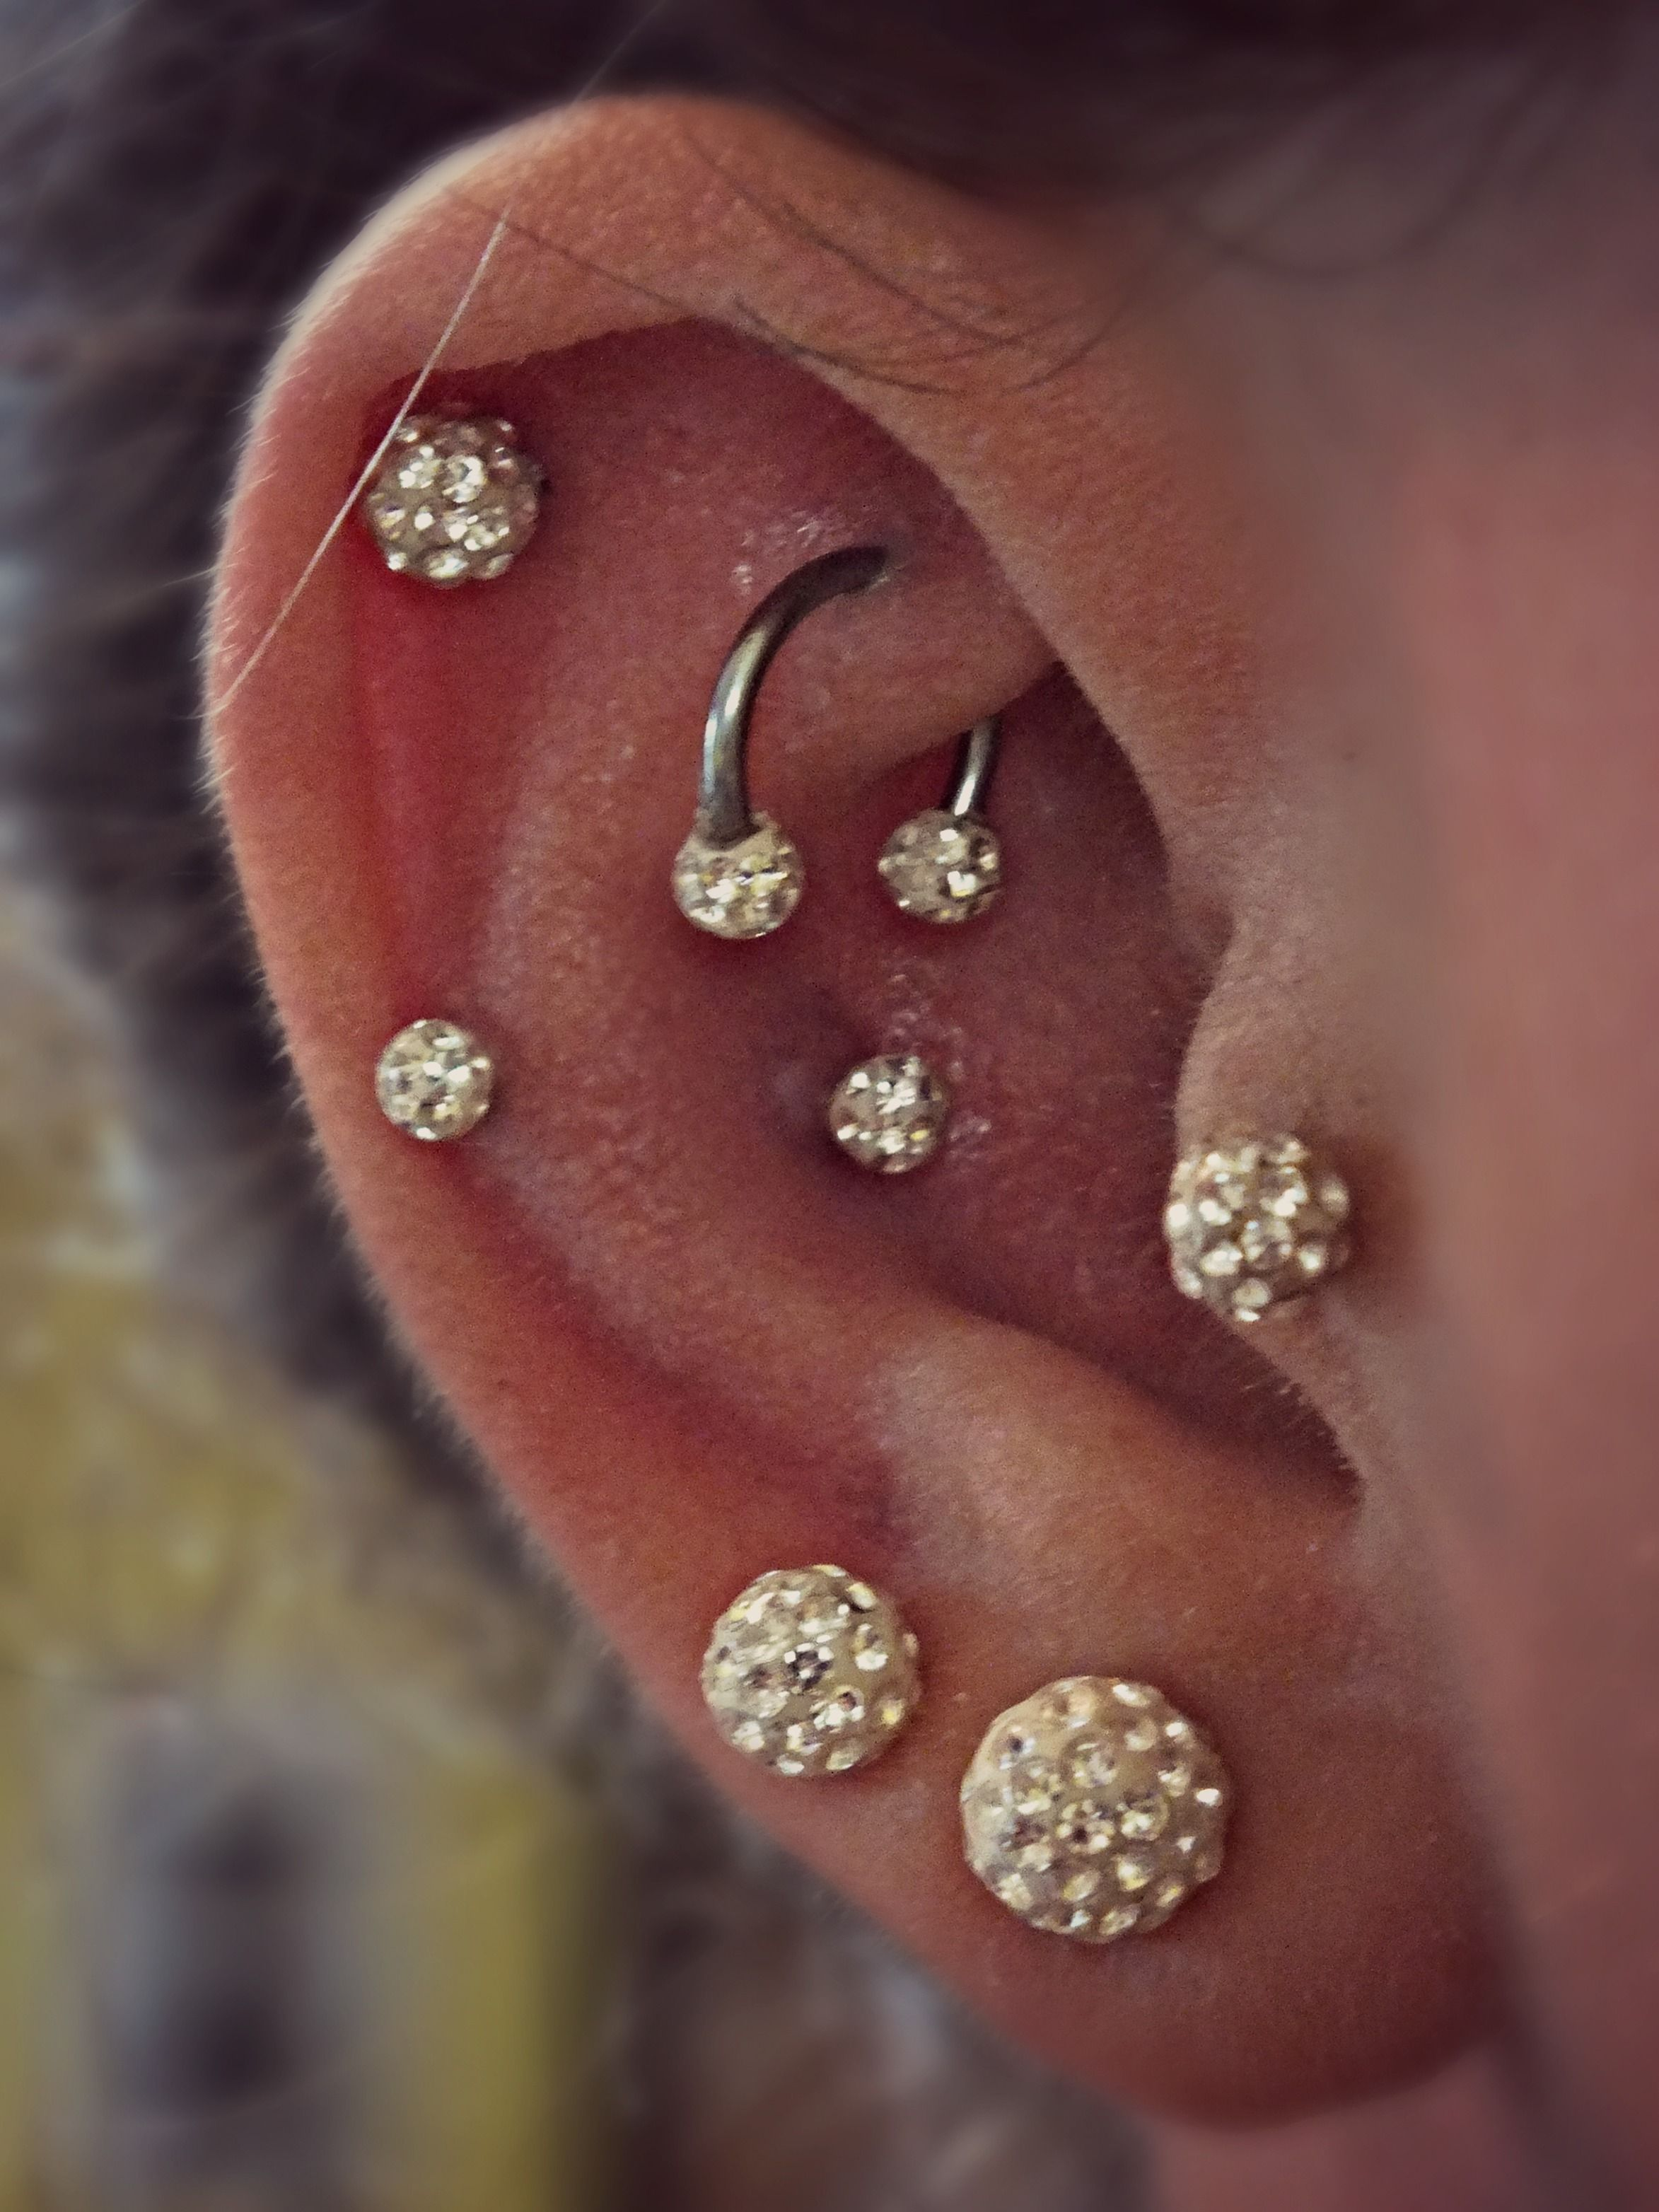 Bump after piercing  Earings Piercings Upper Cartlage Cartlage Piercing Rook Rook